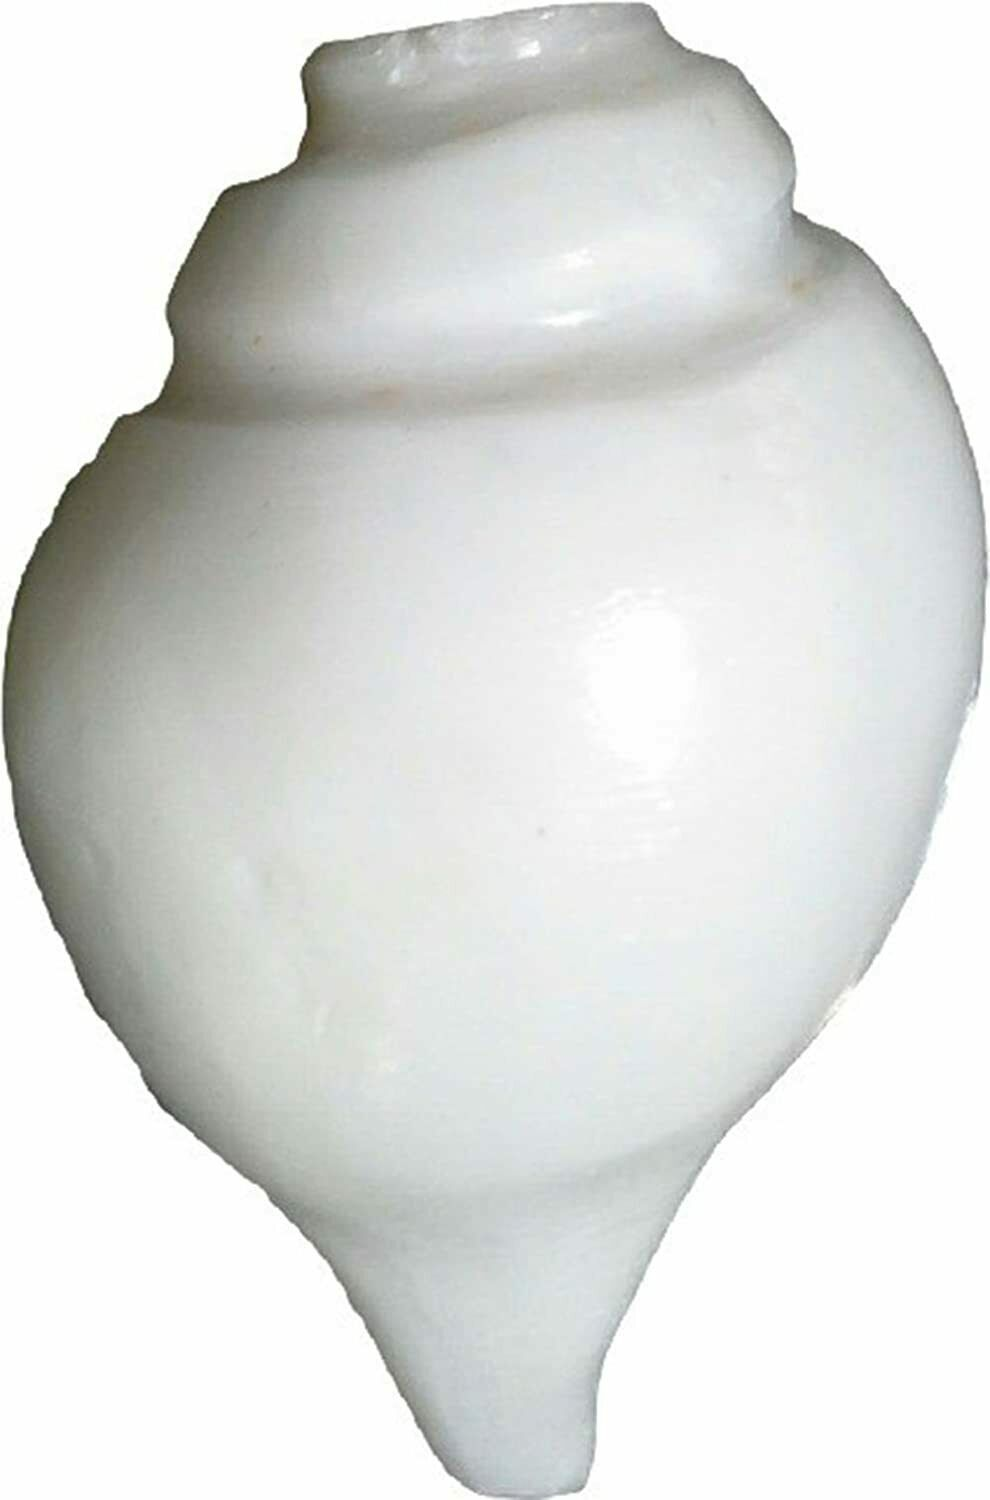 Primary image for Pooja Shankh Loud Blowing Vamavarti Shankh White Conch Shell 4 Inches Free Ship